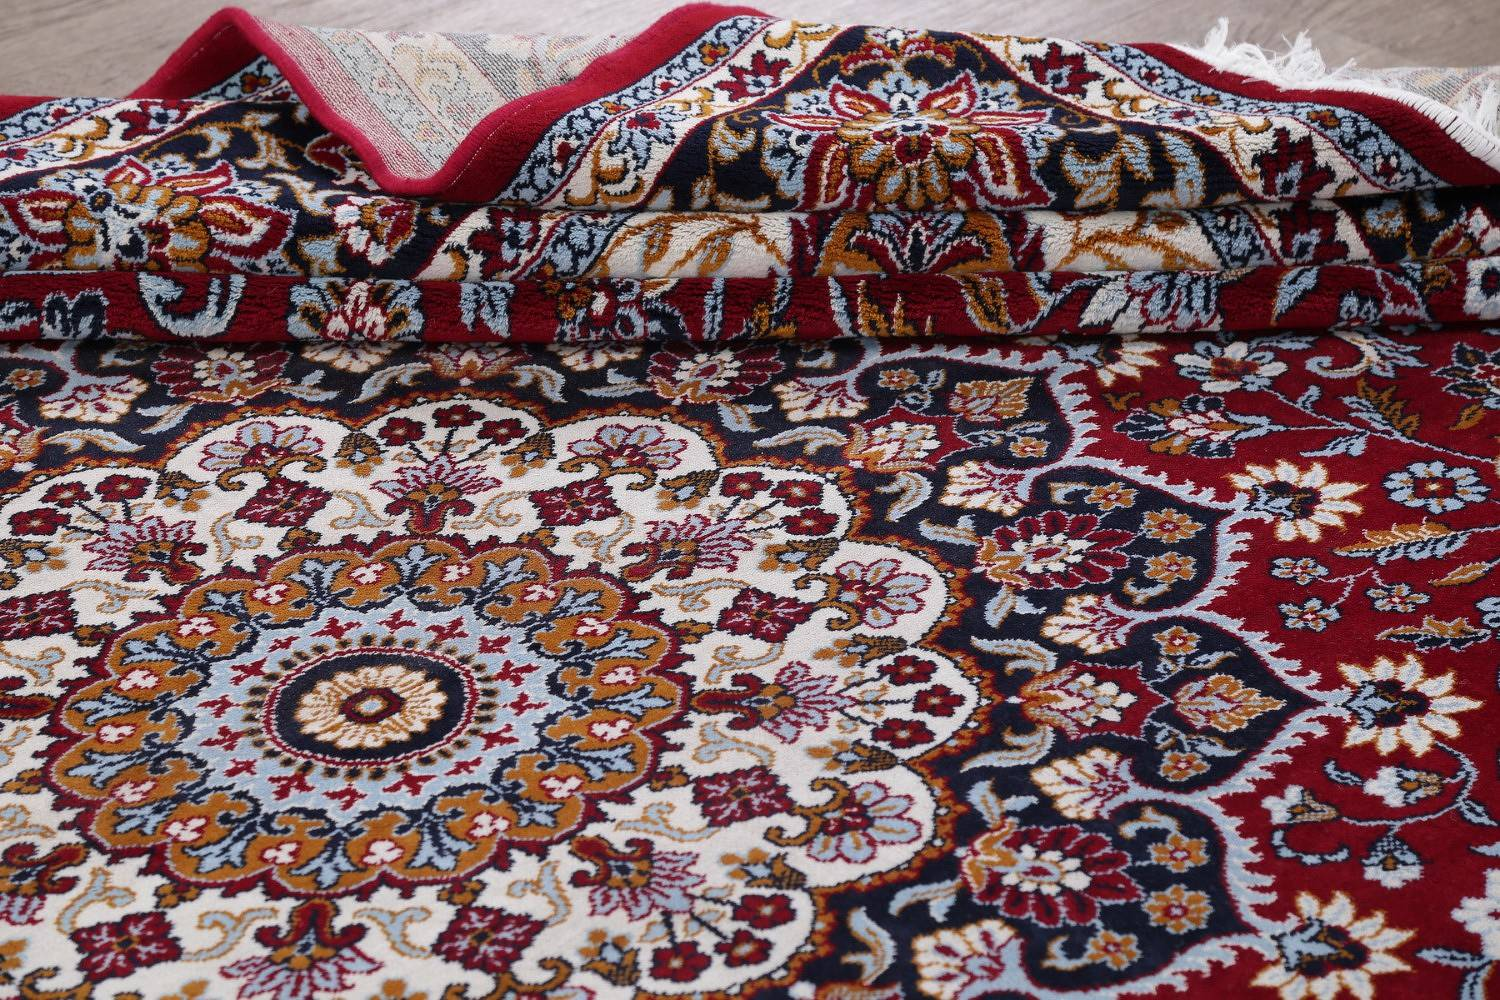 Floral Red Najafabad Isfahan Turkish Oriental Area Rug Wool 10x13